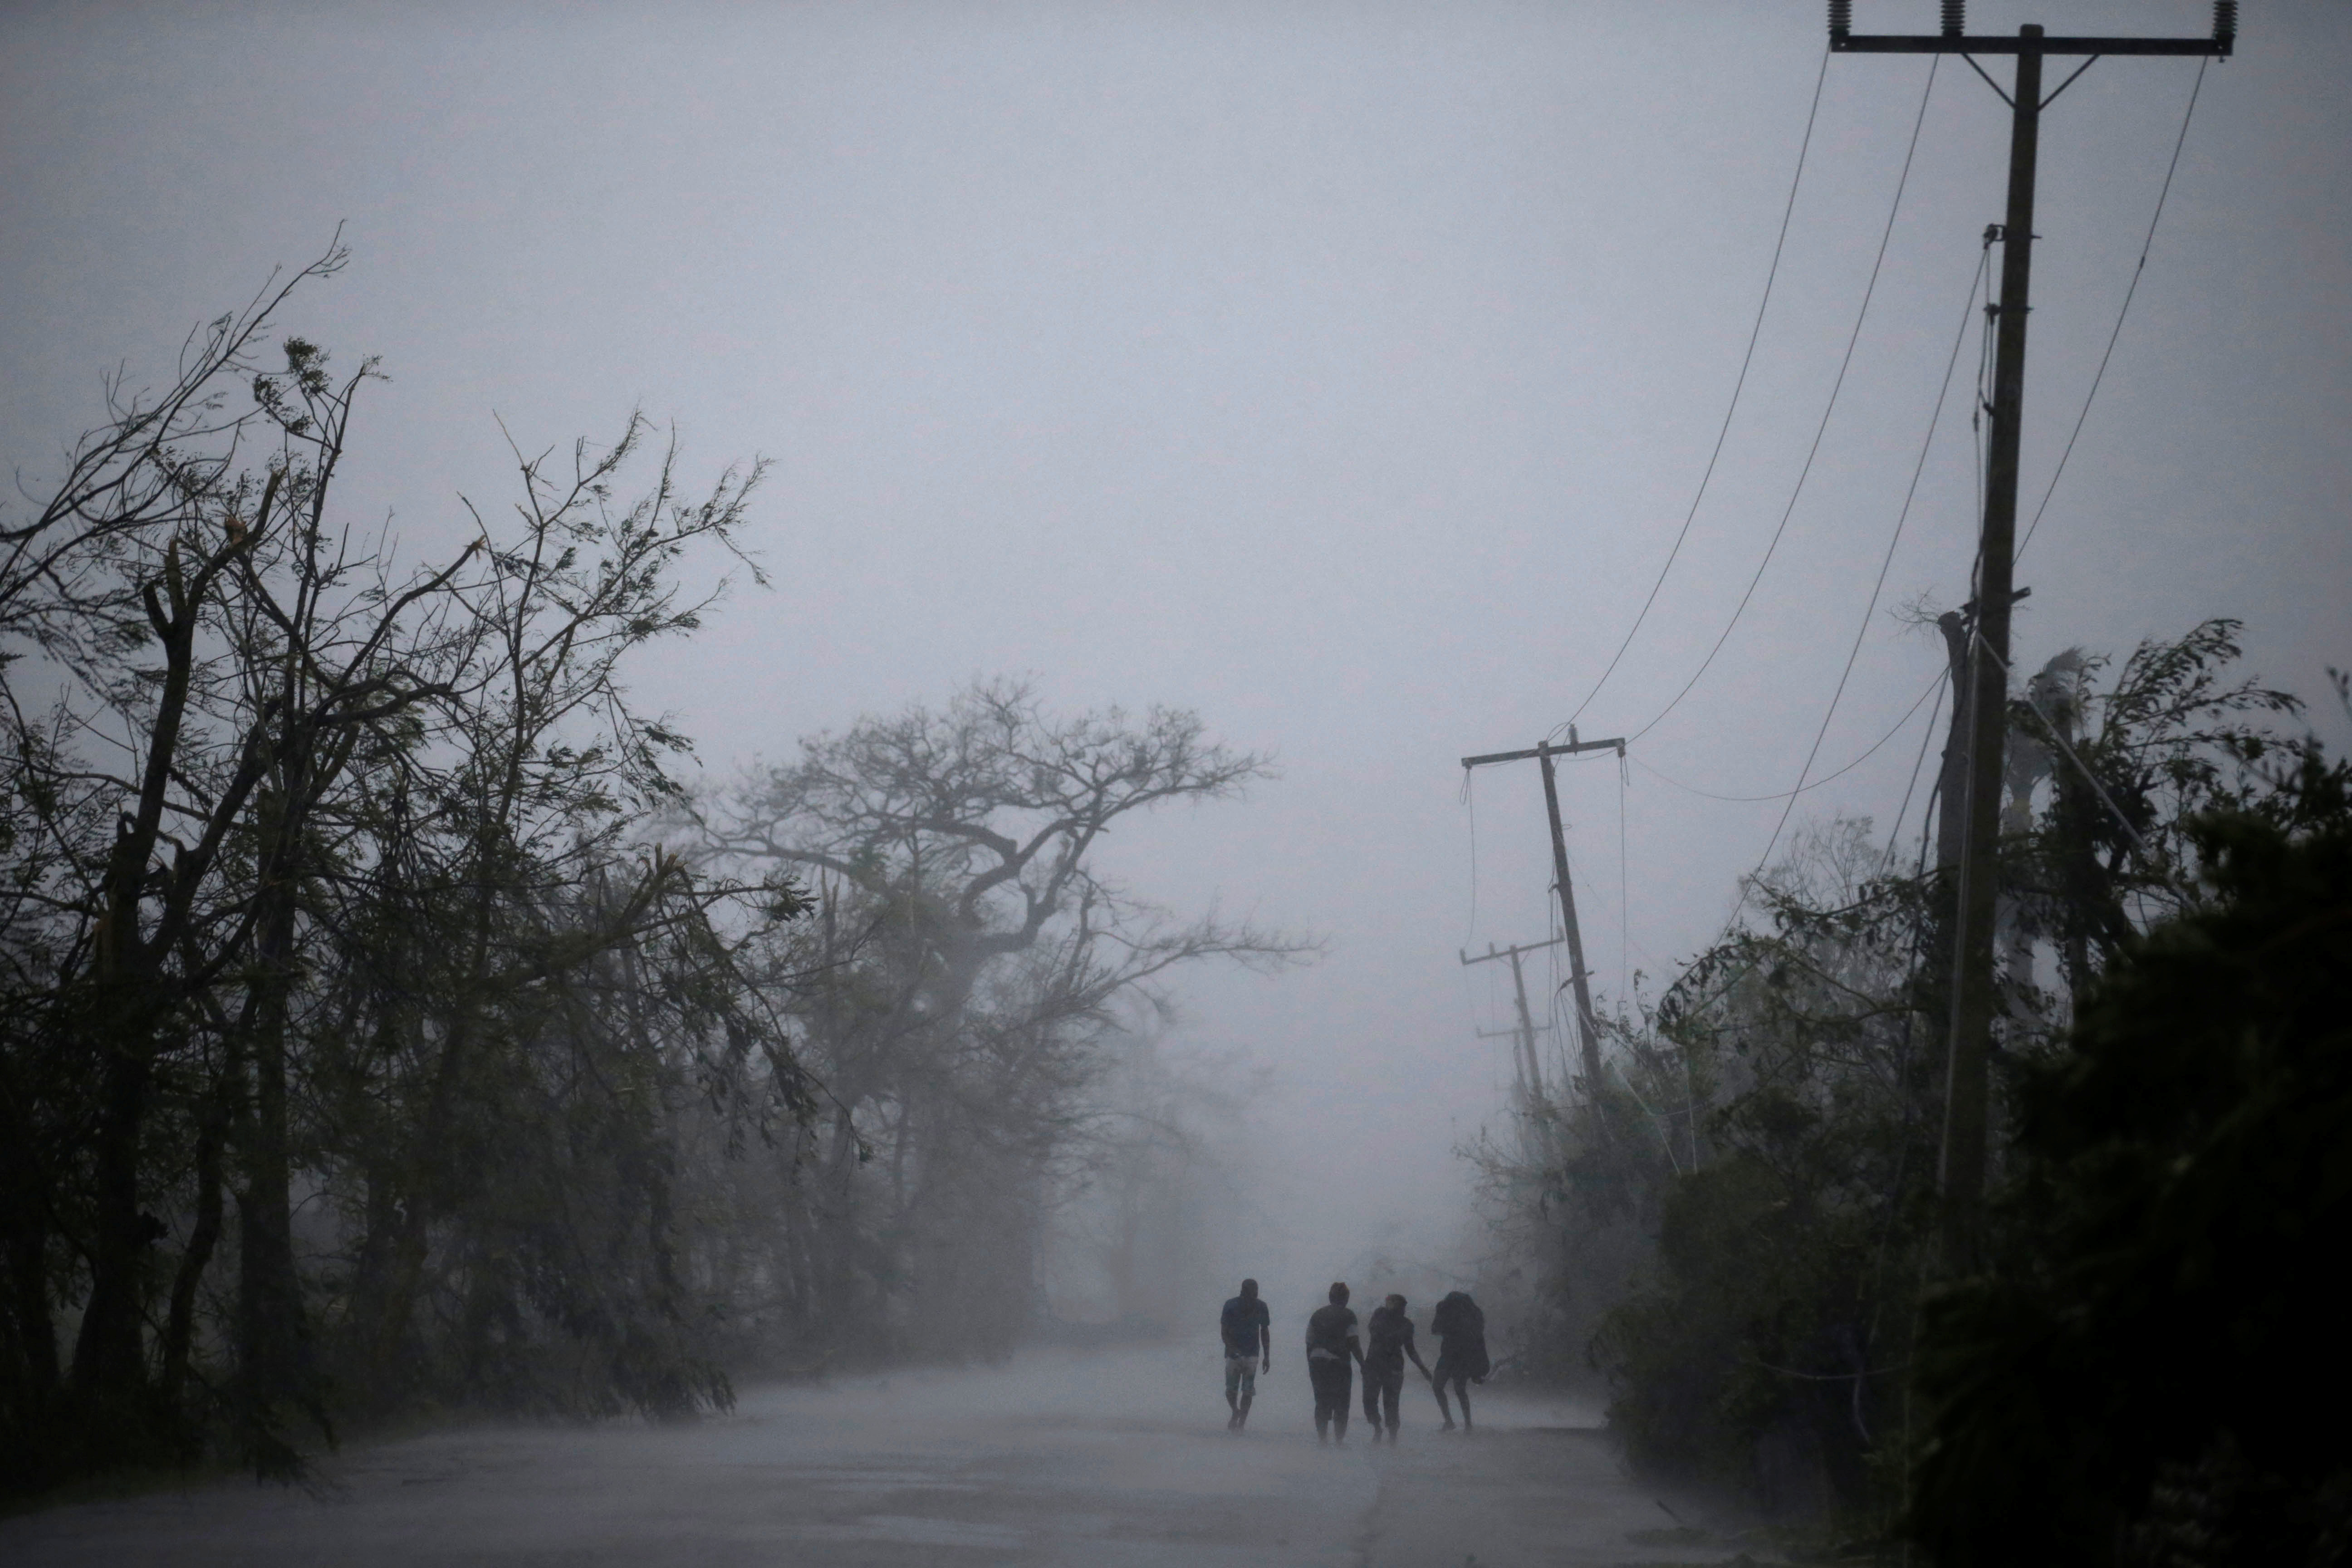 People walk on the road as rain falls during Hurricane Matthew in Les Cayes, Haiti on Oct. 4.